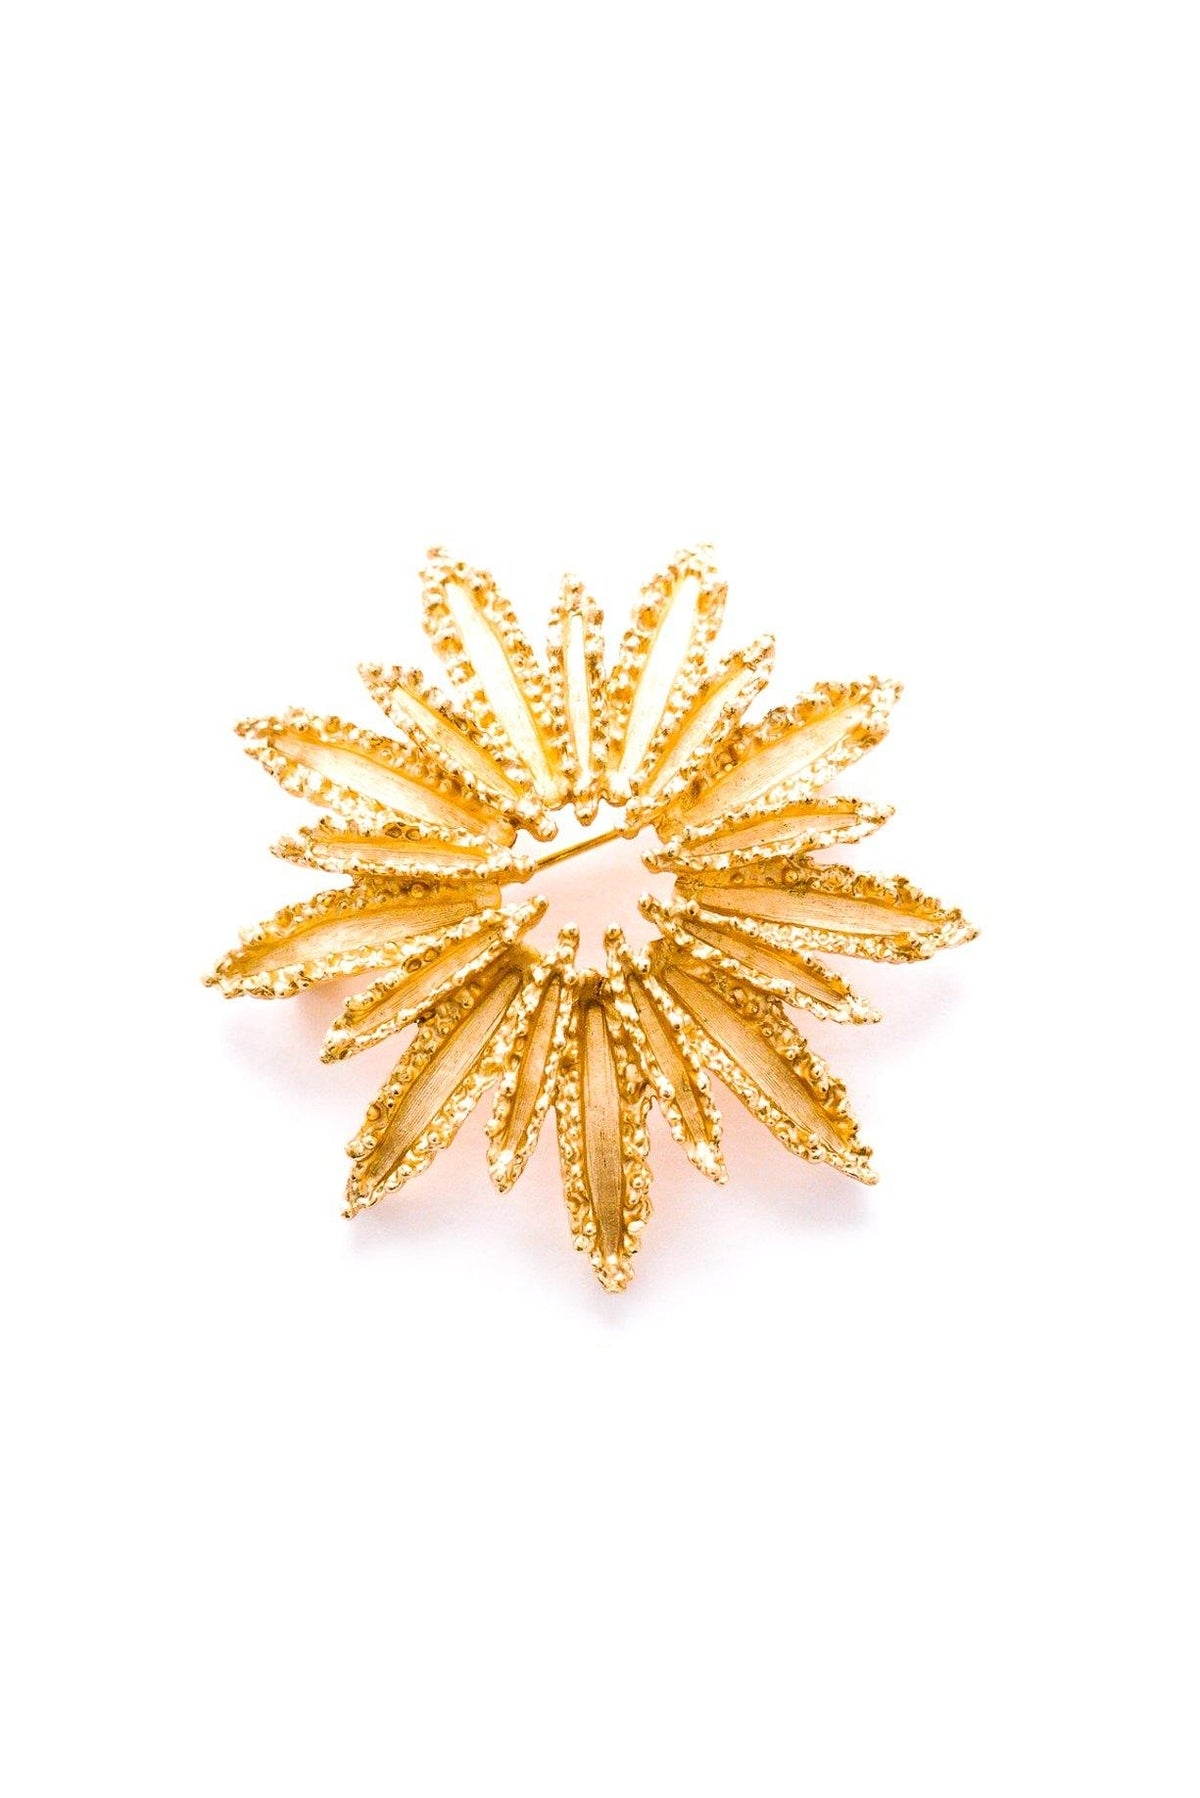 Vintage Avon Burst Brooch from Sweet & Spark